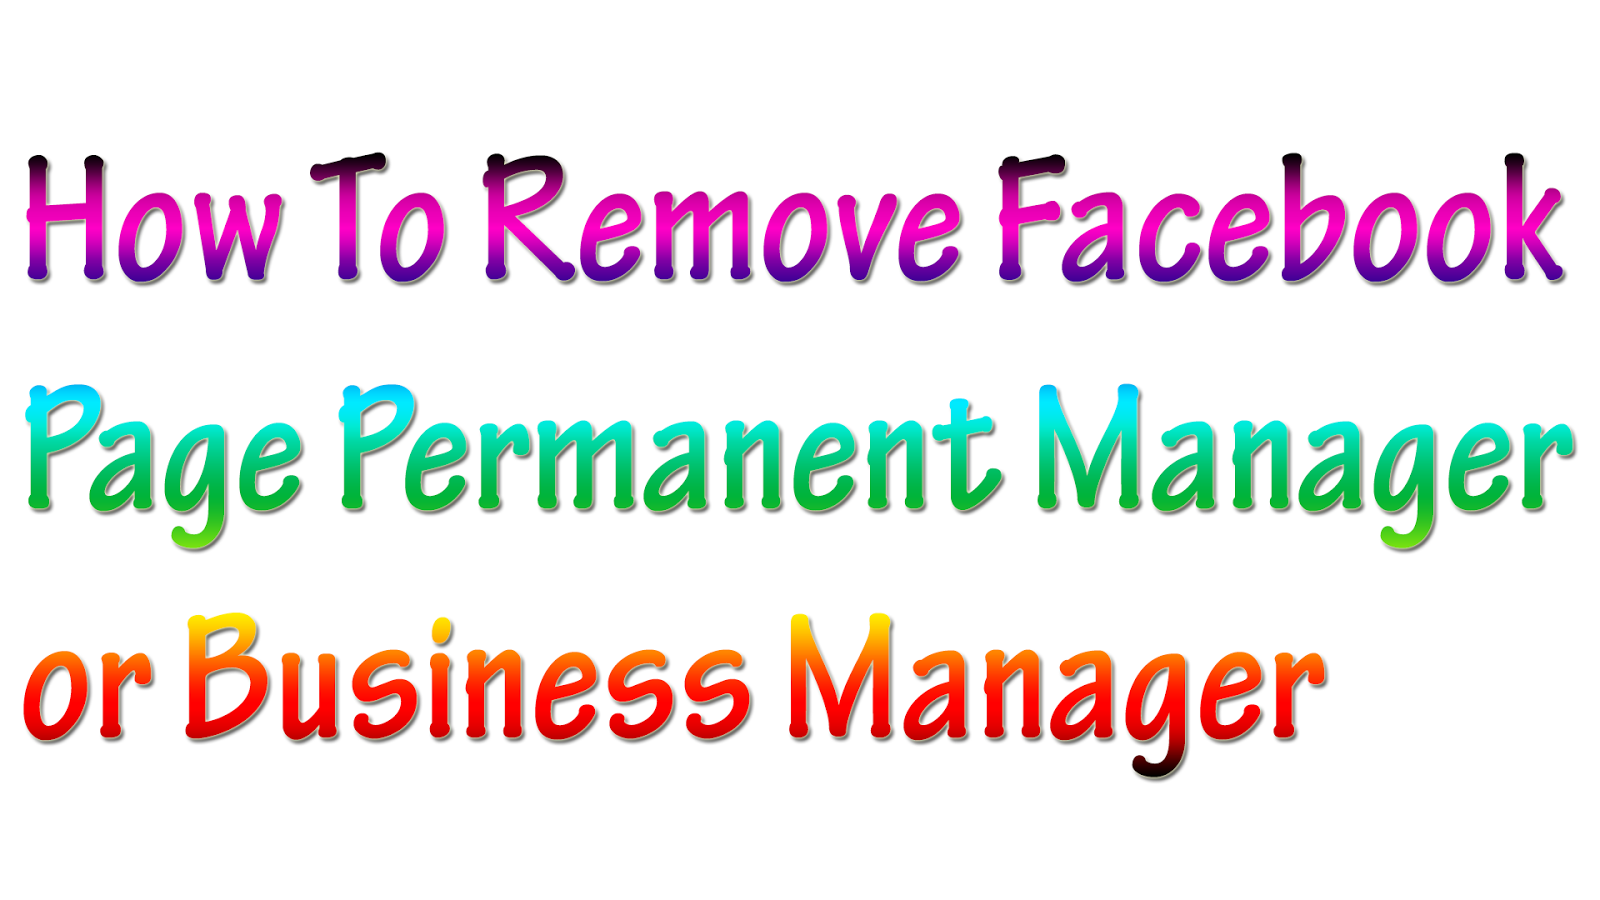 Now Here Is A How To Remove Facebook Page Permanent Manager